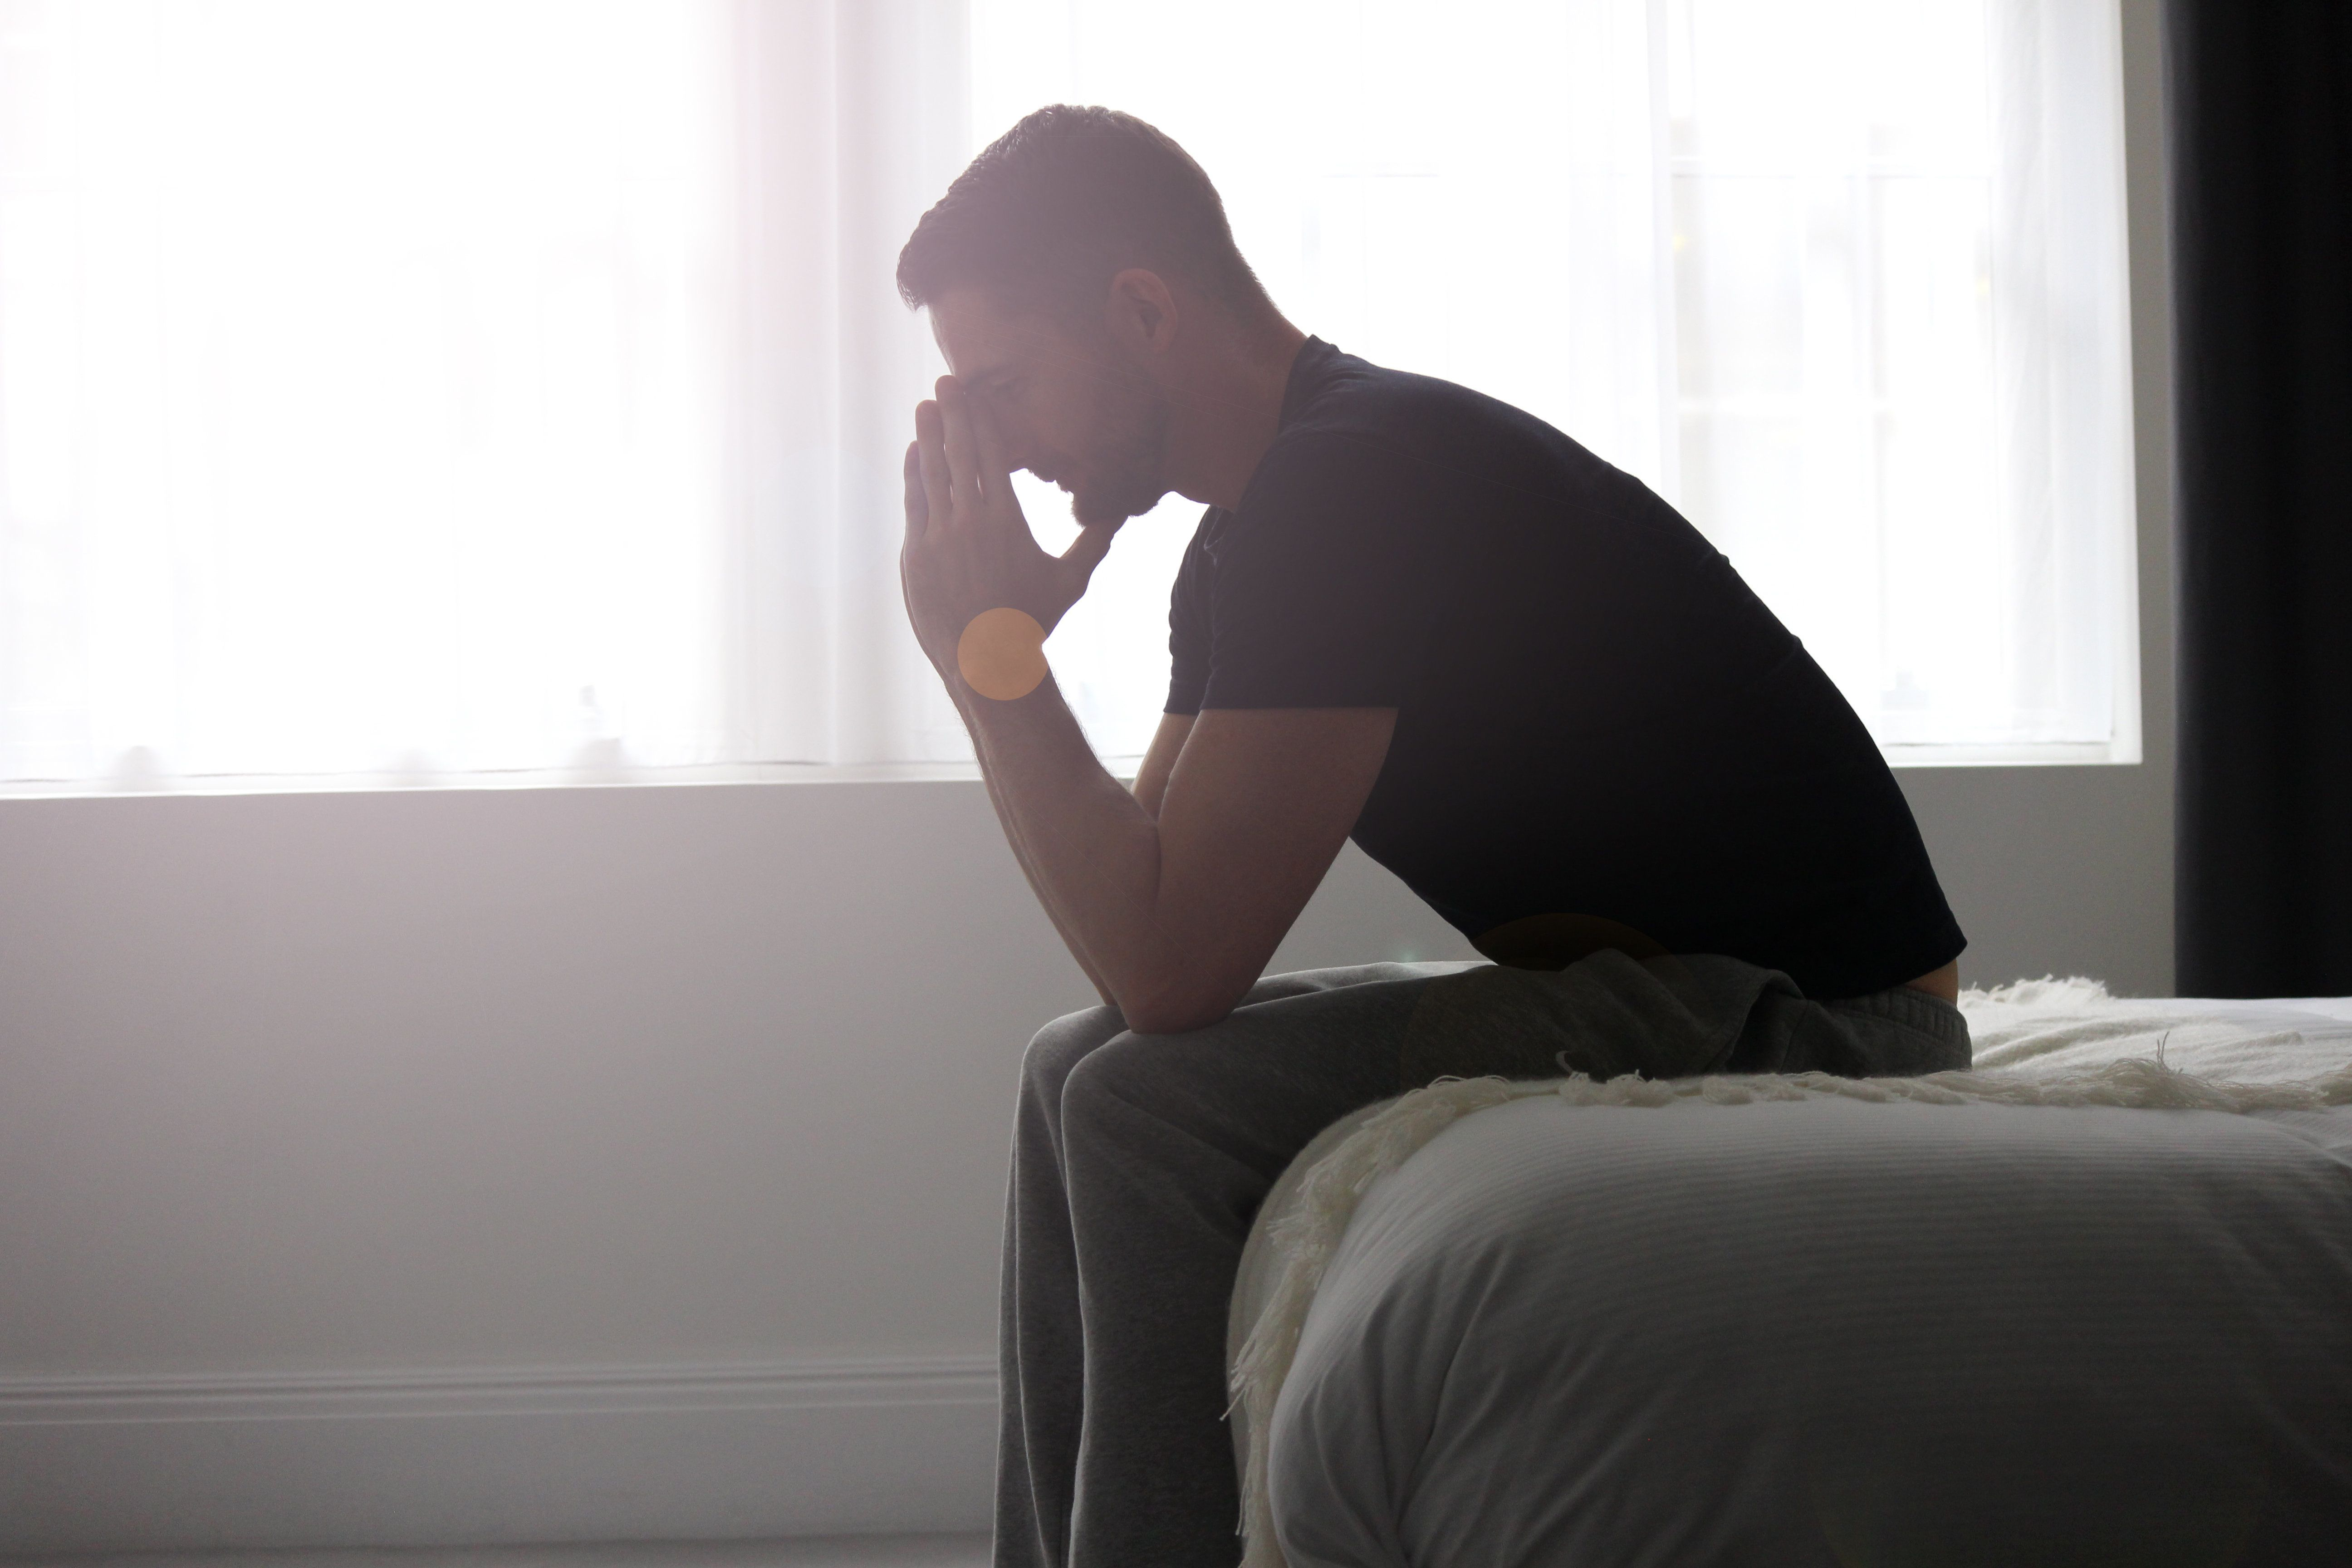 Men who are really struggling after a miscarriage often fail to get help, in part because they do not necessarily present their grief in a way that others recognize.